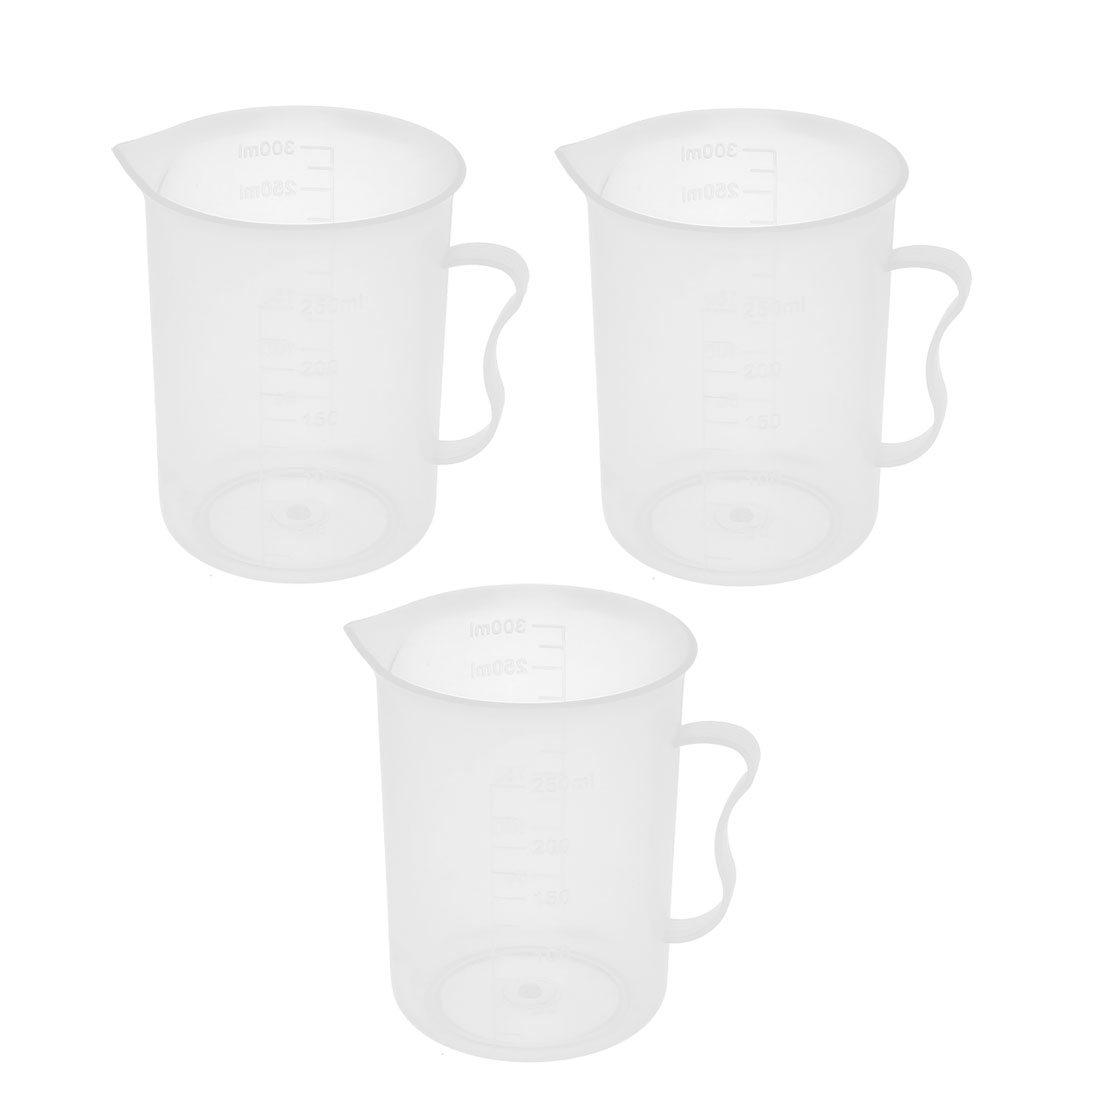 3 Pcs School Lab Plastic Water Liquid Container Measuring Beaker 300mL